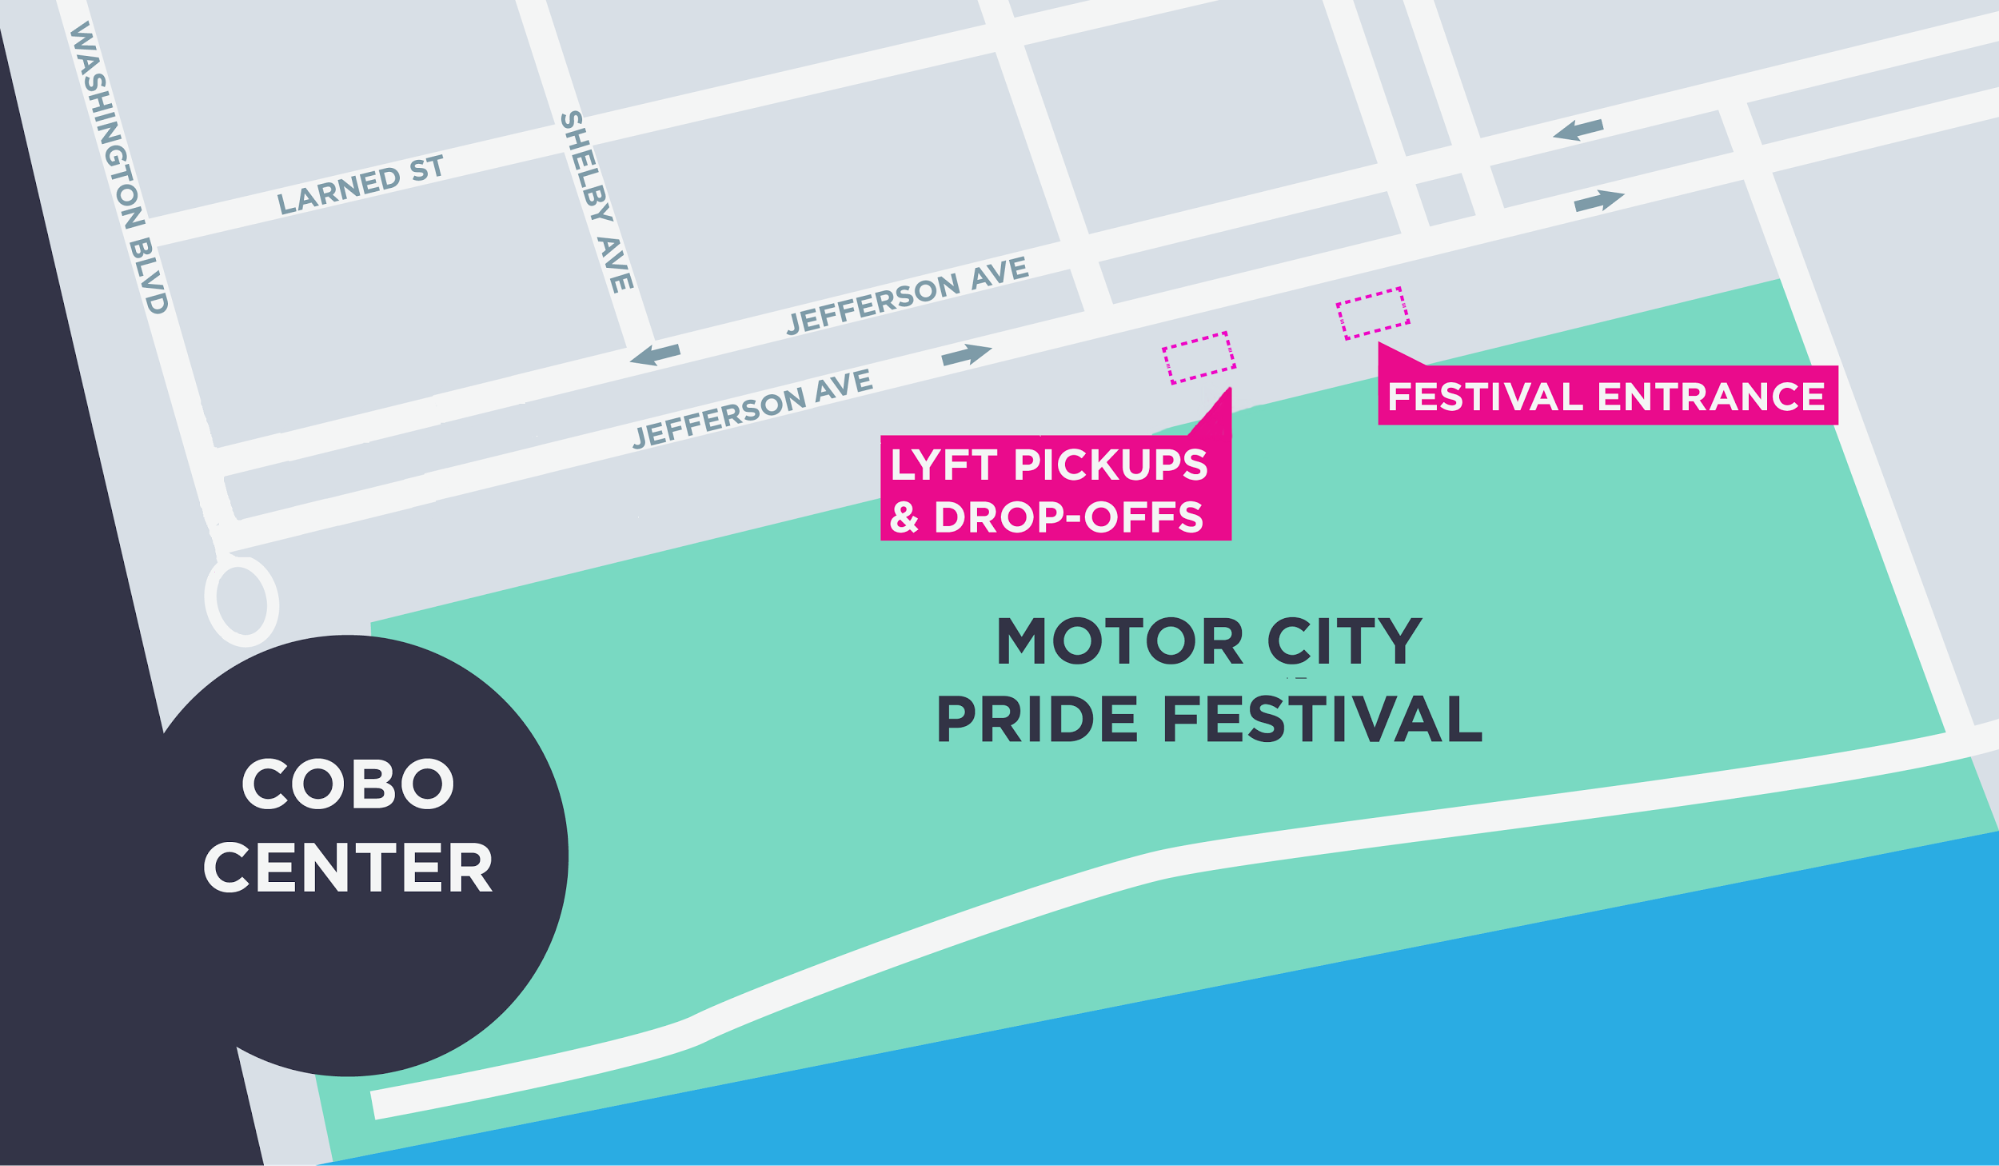 Trips to and from the event are subject to an $1.00 event fee at all times during the  Motor City Pride Festivities  (6/10/11-6/11/17). This fee shall start applying on 6/10/2017 and may be subject to change. For more information on other fees included on your Lyft ride, check out your city's pricing details at lyft.com/cities or at lyft.com/terms  Limited quantity available, while supplies last. Each code applies 20% off a ride, up to $5, to or from the Motor City Pride Festival between 6/10/17-6/11/17. One code redemption allowed per passenger. Discount applies to the fare and Prime Time charges only, not to Trust & Service fee, tips, tolls, taxes, or other fees and charges. Minimum fares apply. No cash value and cannot be combined with other ride credit or offers. Subject to  Lyft's Terms of Service .